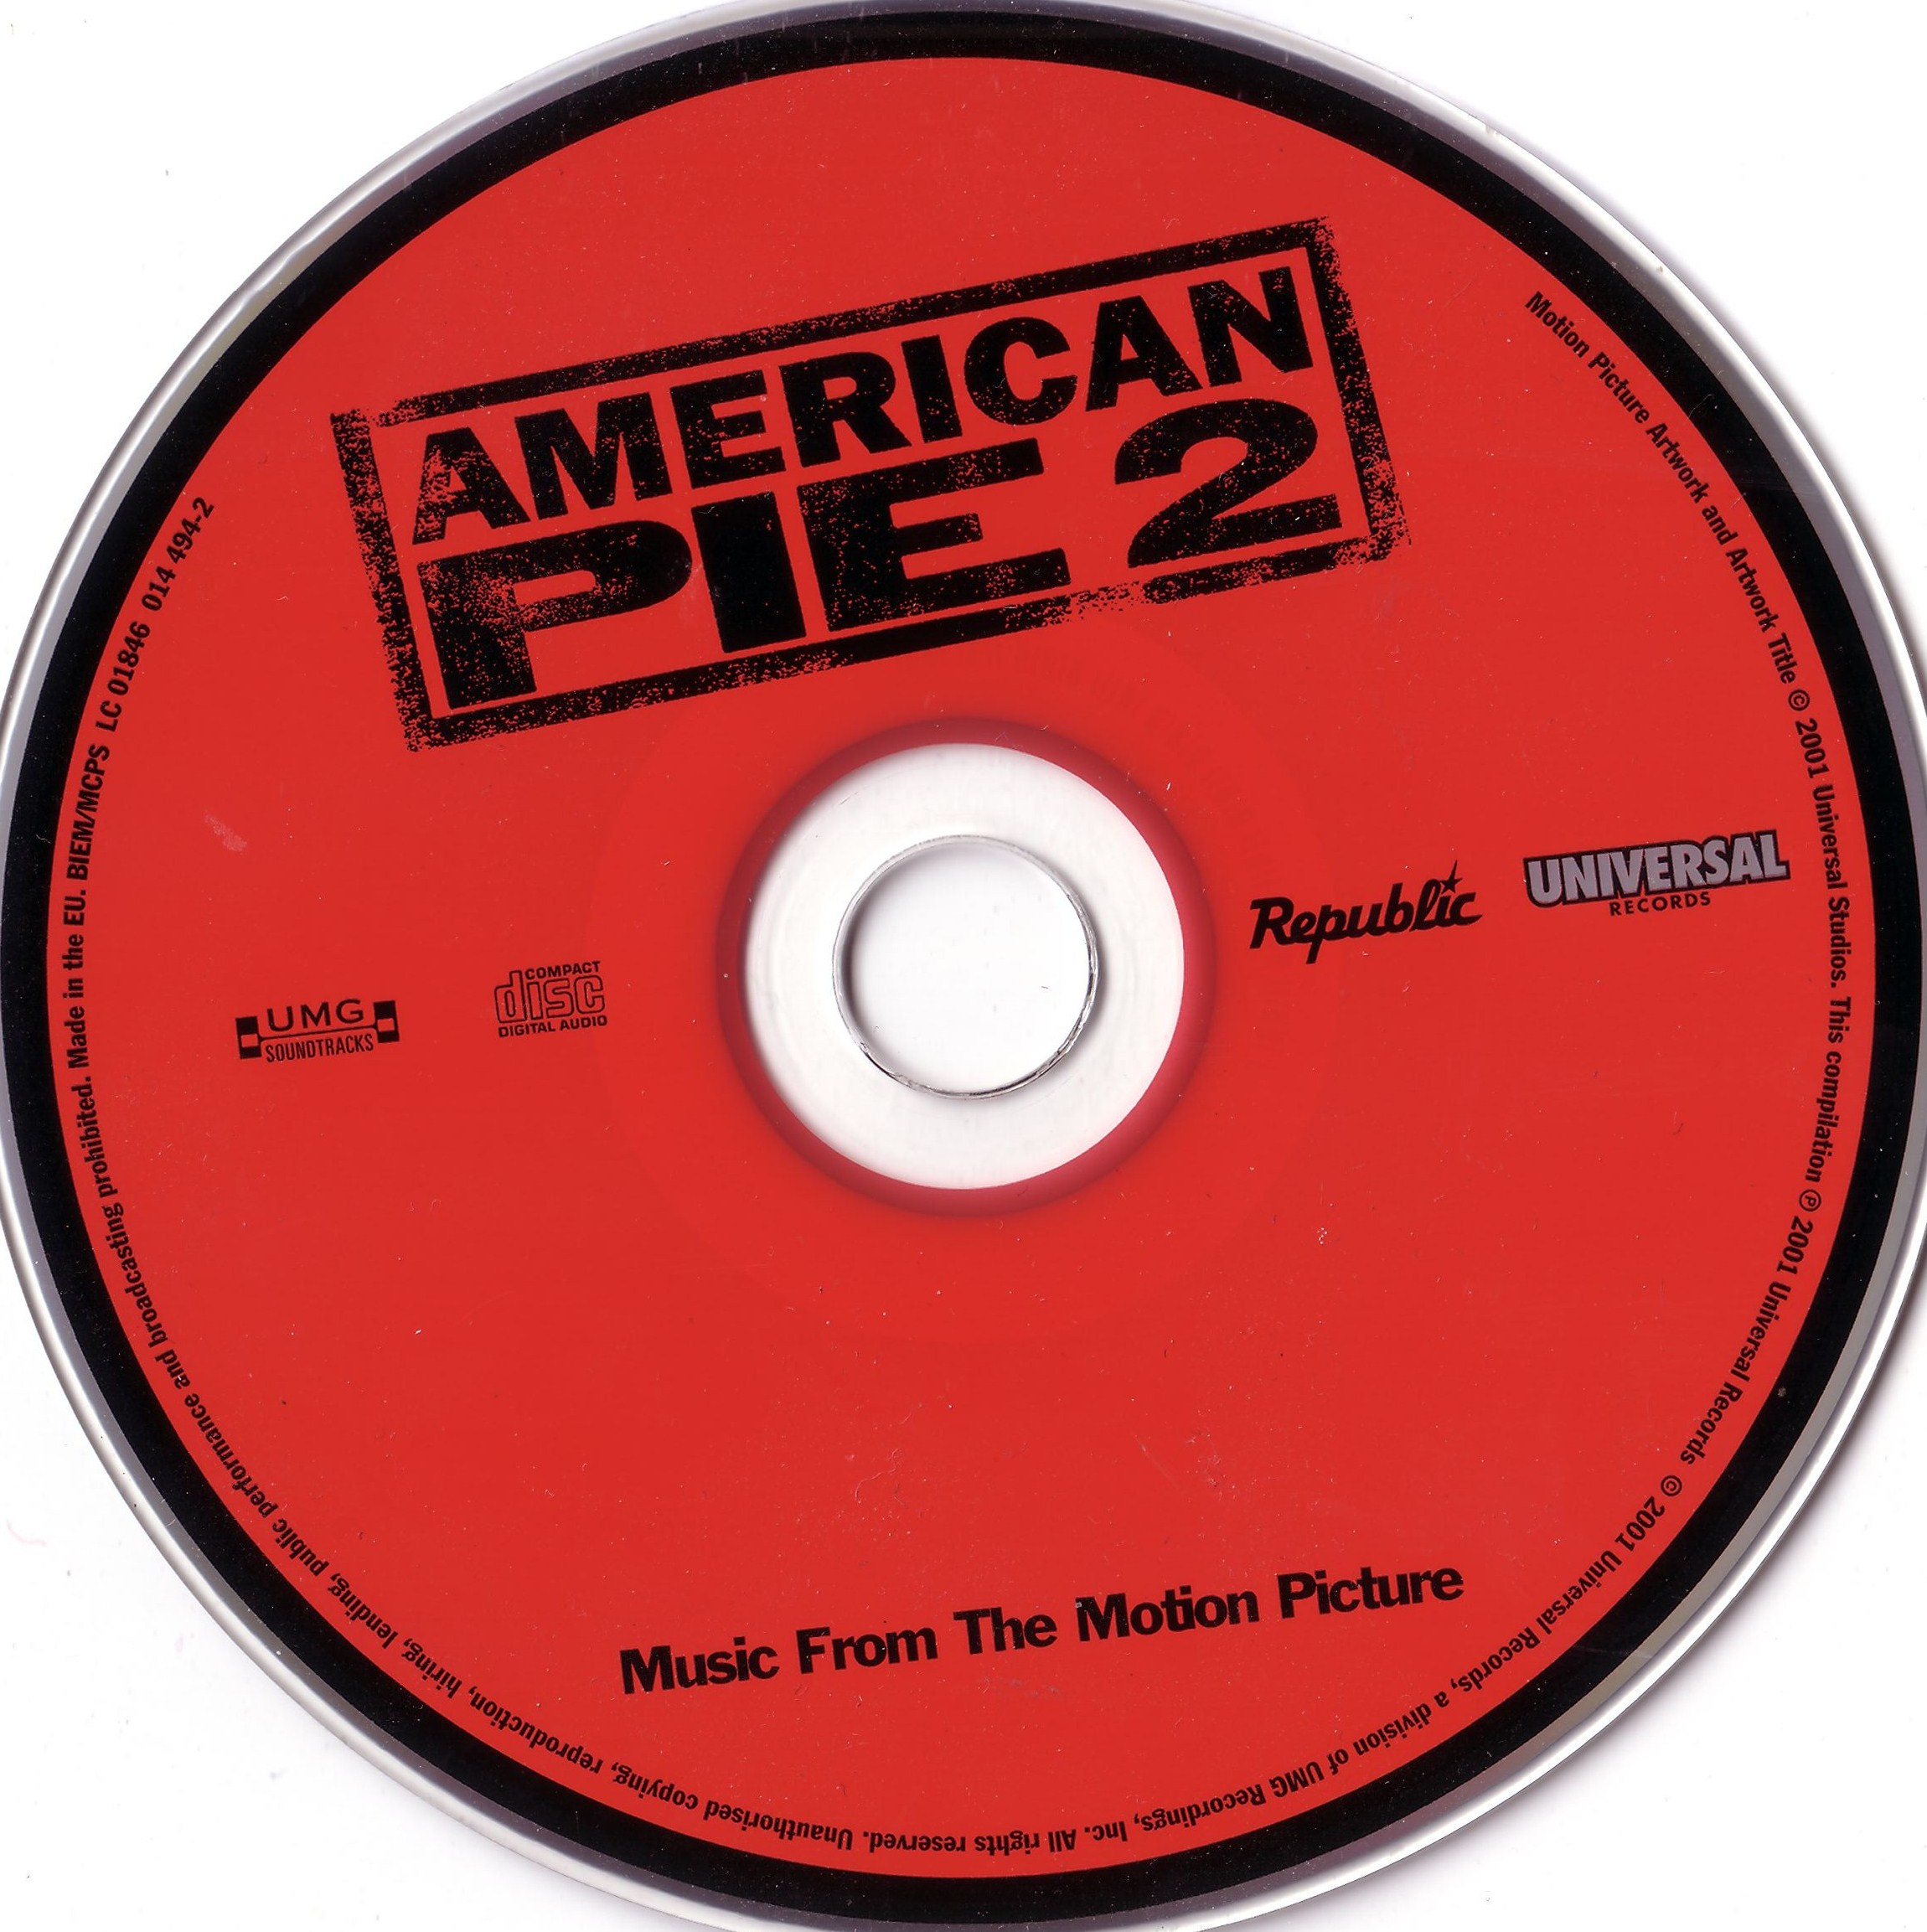 American Teen On This Soundtrack Teenage Sex Quizes